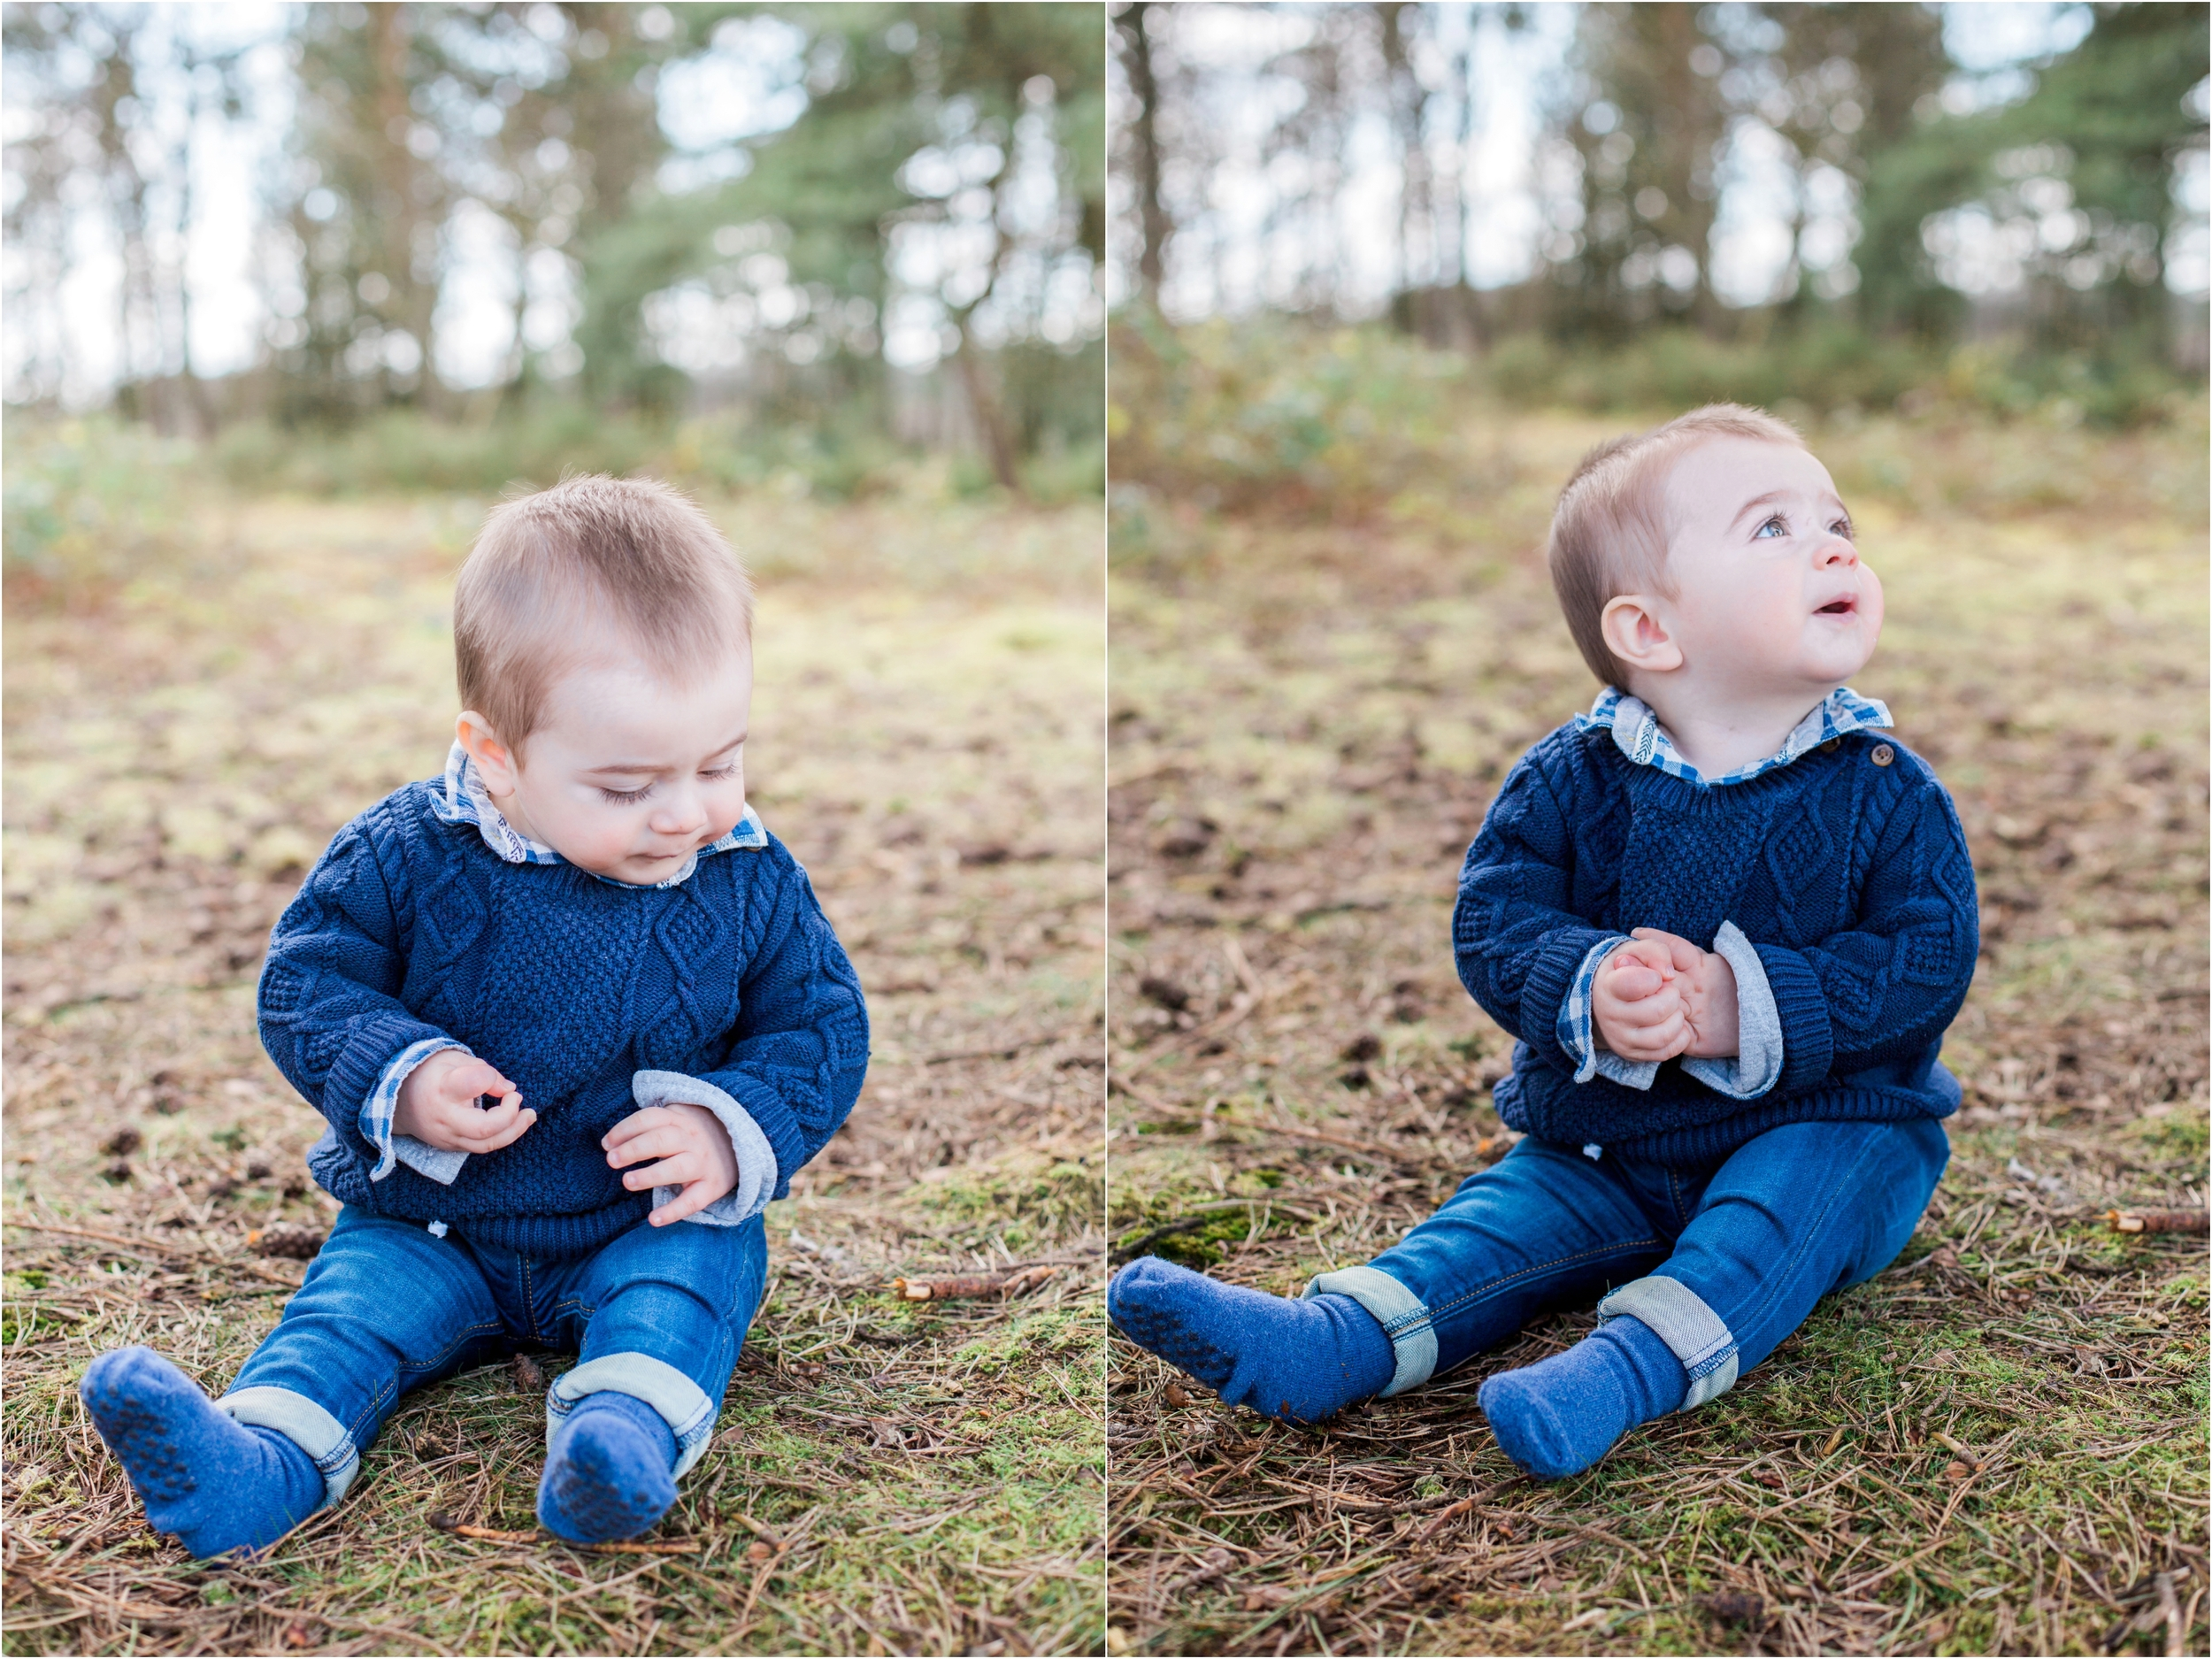 Sophie Evans Photography. Warwickshire Family Photographer, Lifestyle family shoot. Lickey Hills Family Shoot (4).jpg